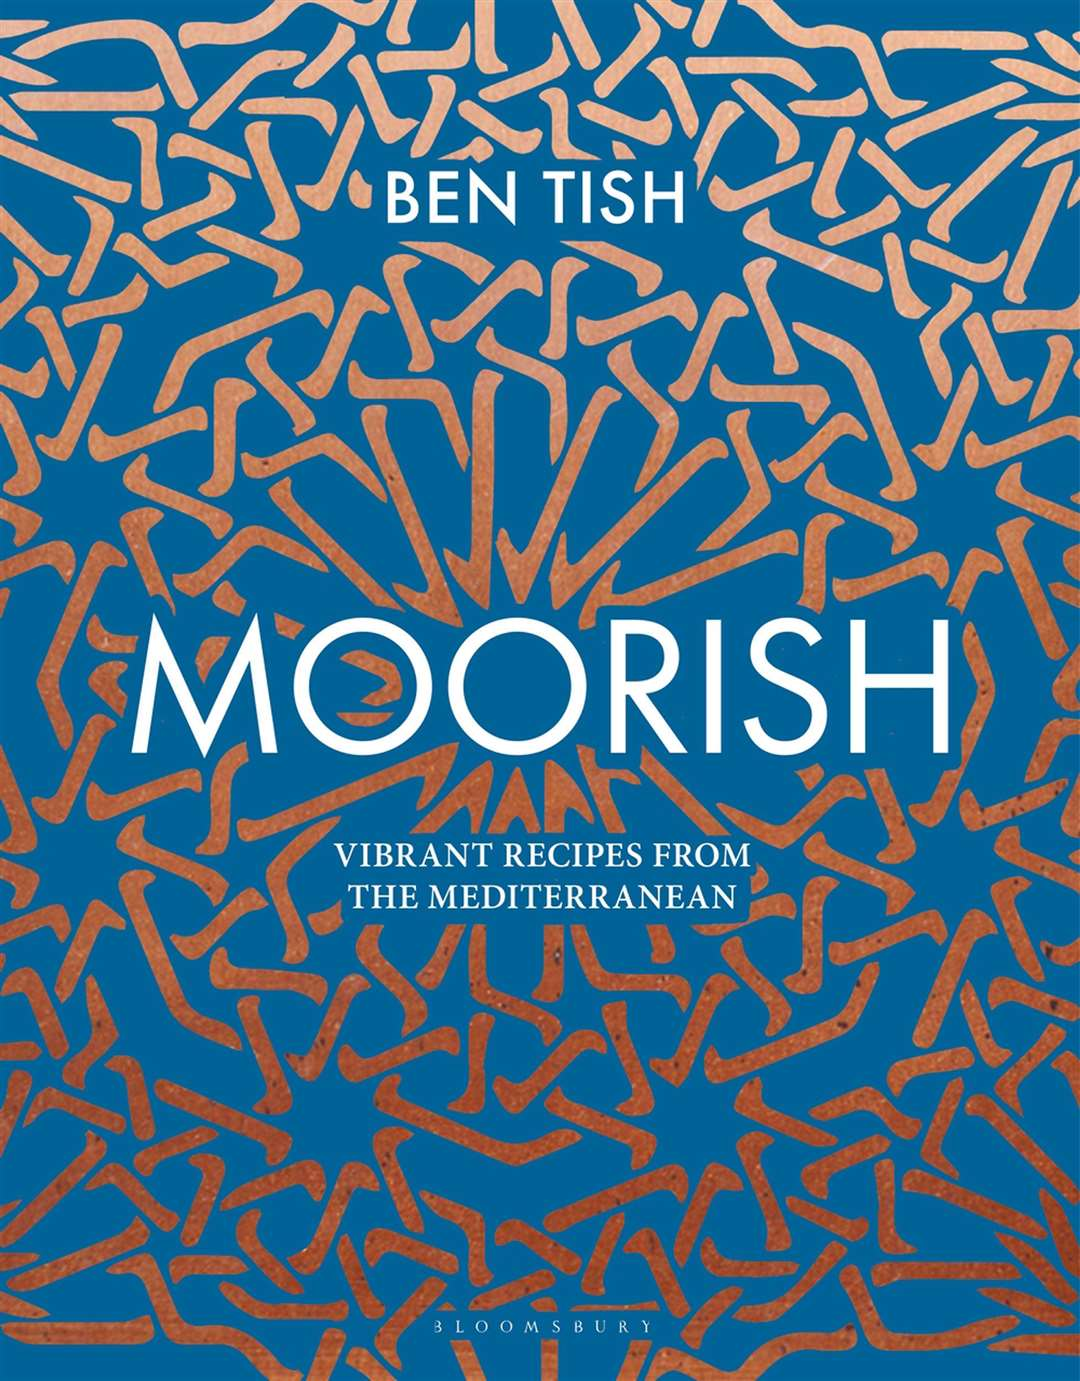 Moorish by Ben Tish, published by Bloomsbury Absolute.